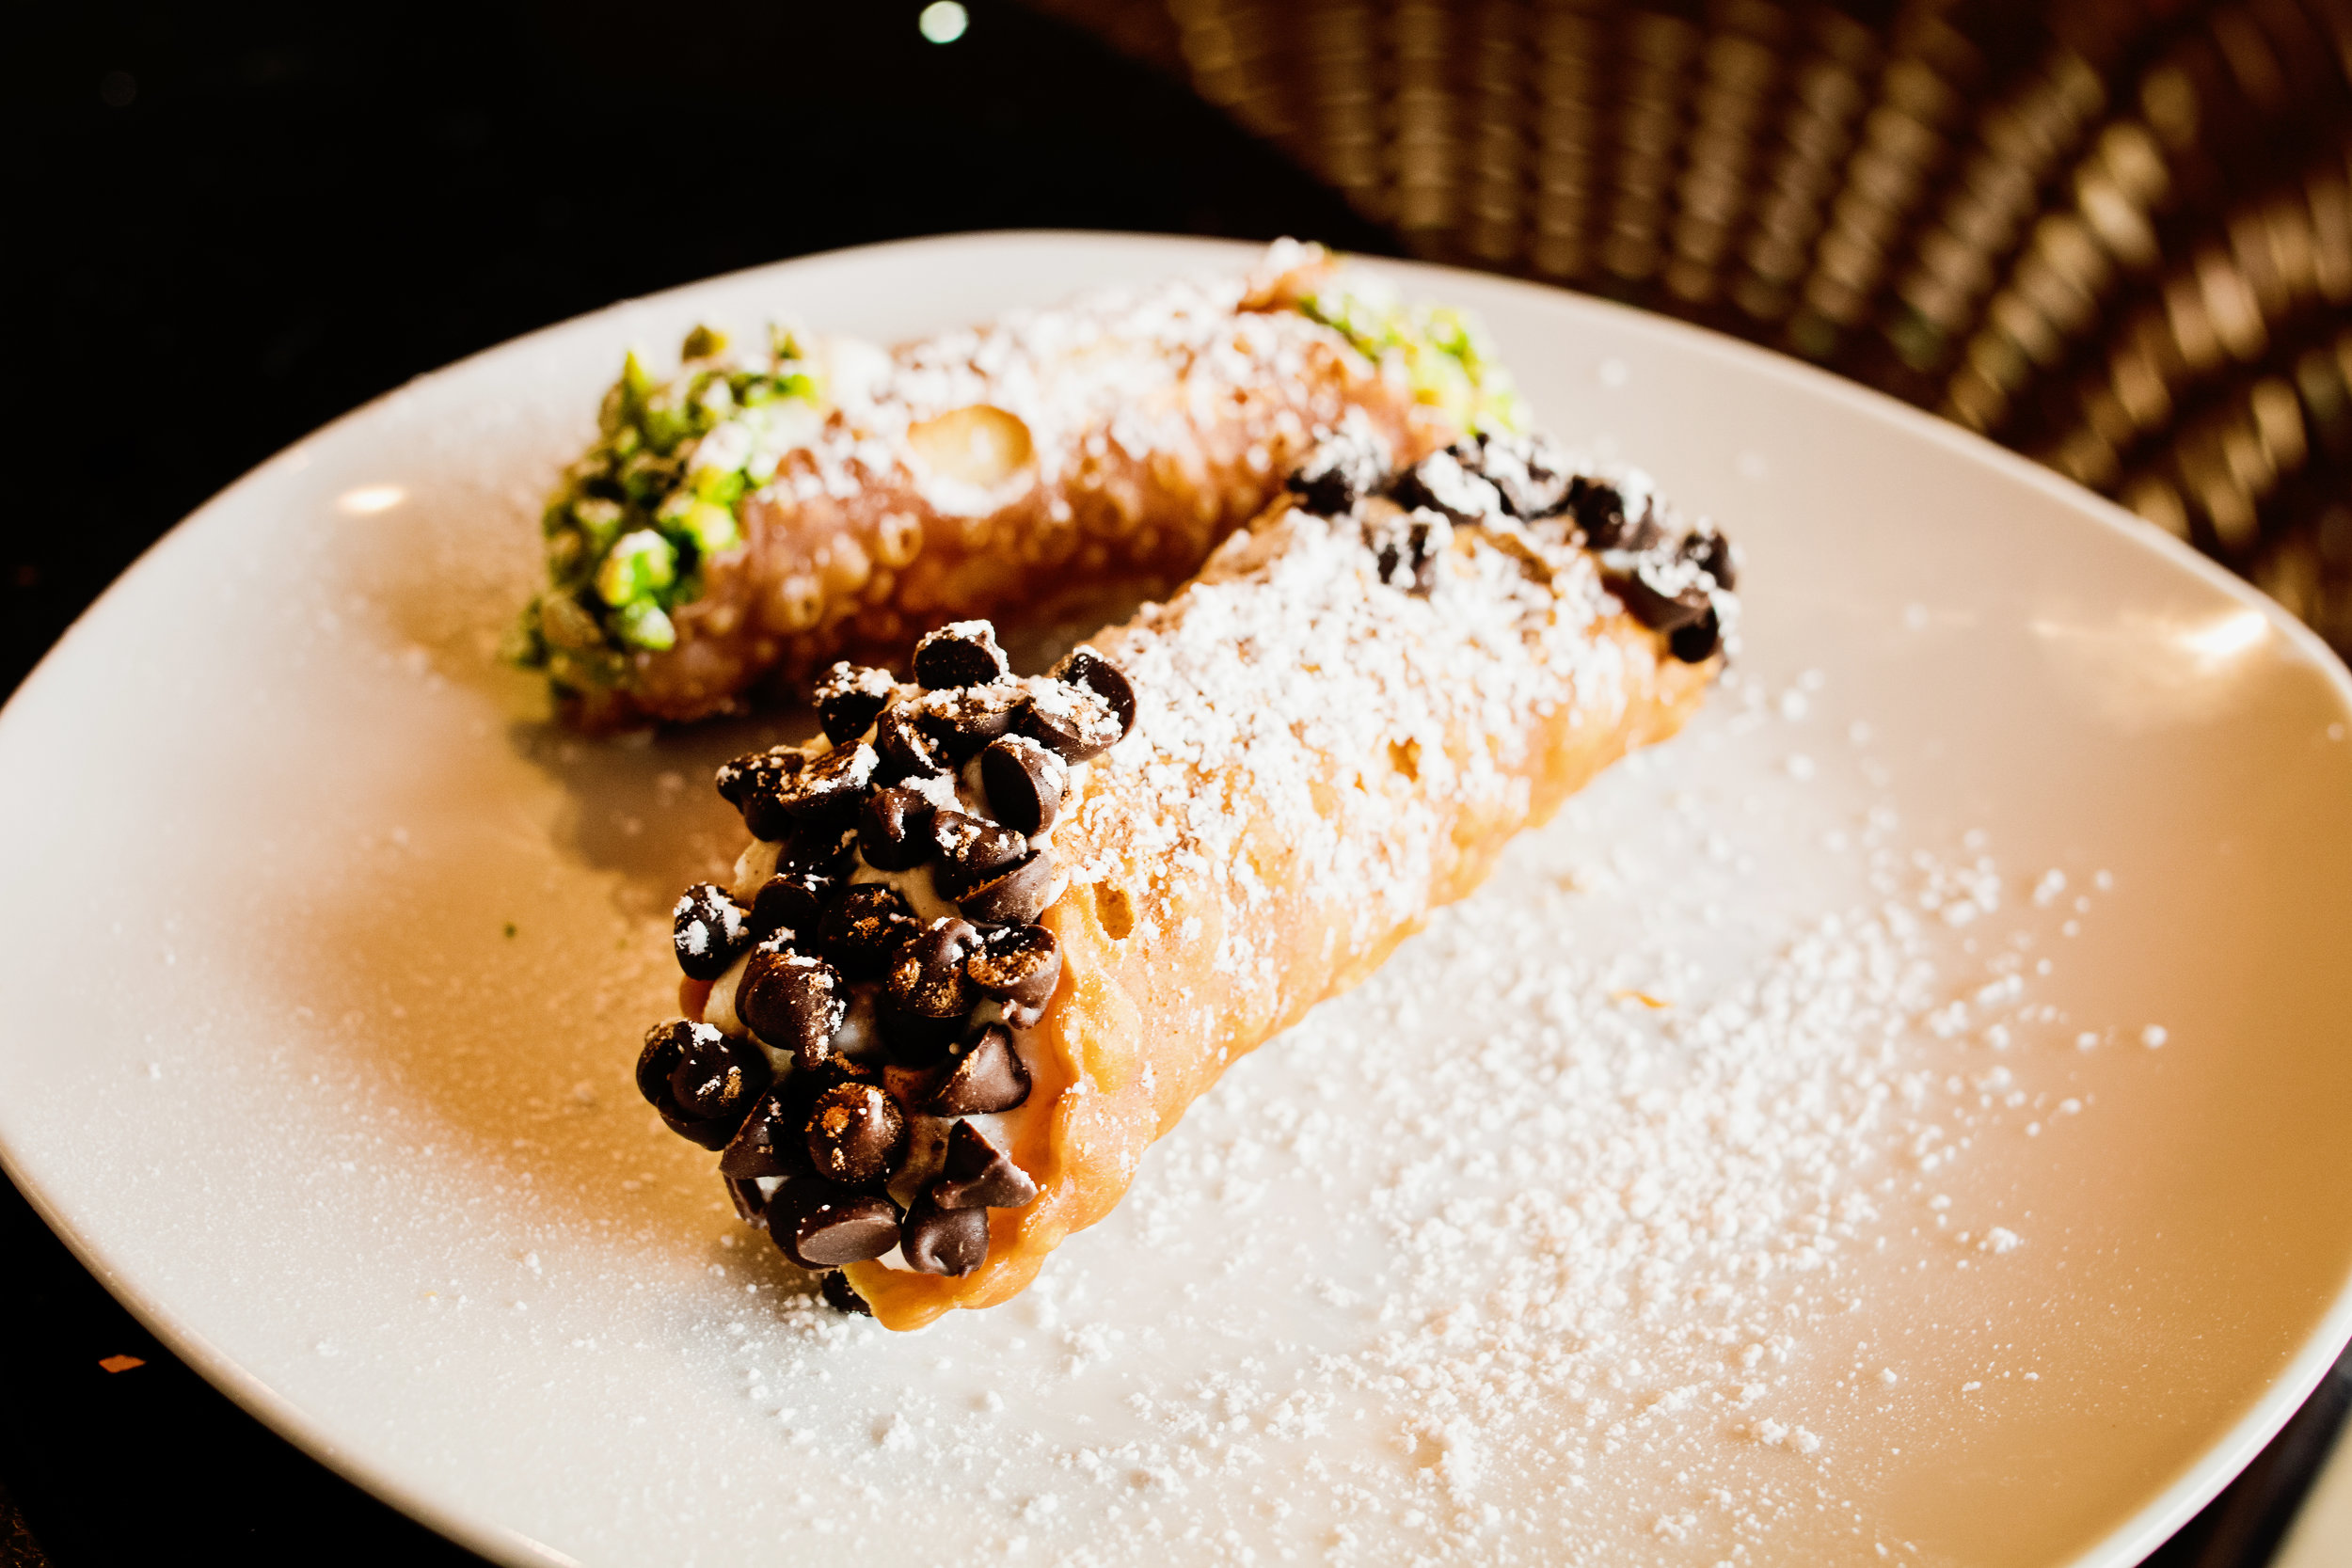 Chocolate Chip and Pistachio Cannoli photo courtesy of Northwest Quarterly Magazine